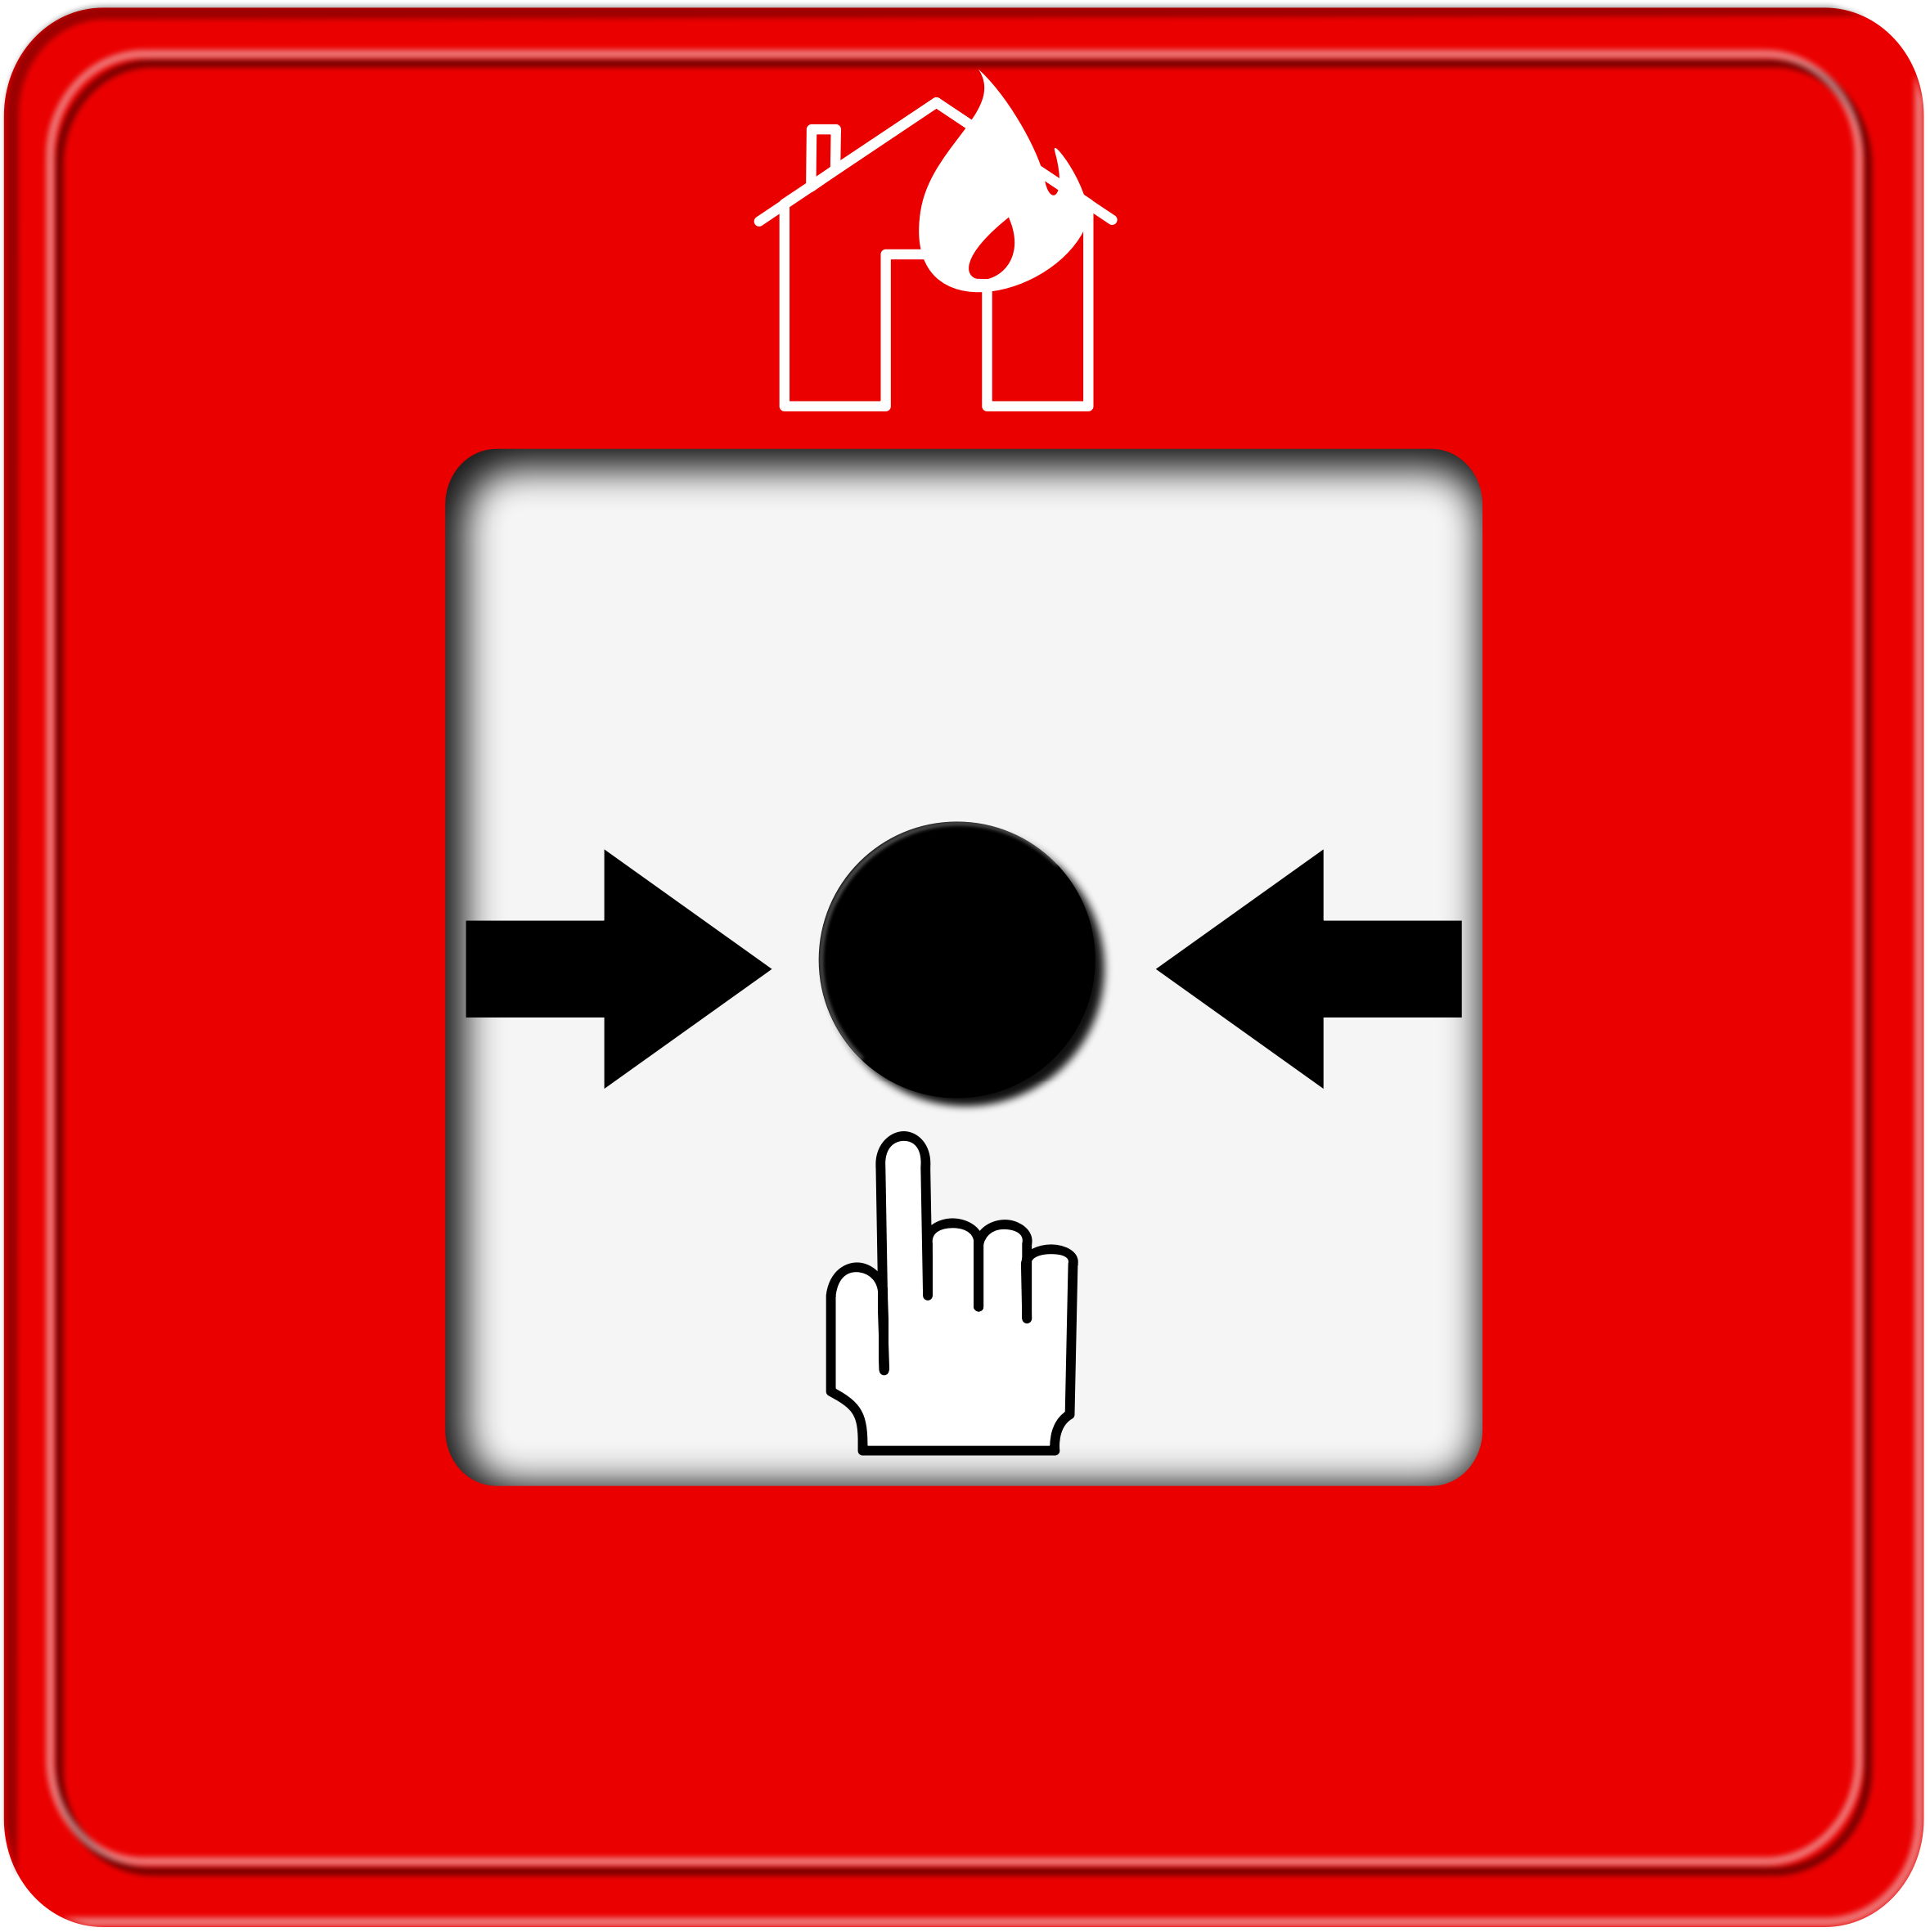 Fire Alarm Pushbutton by mi_brami